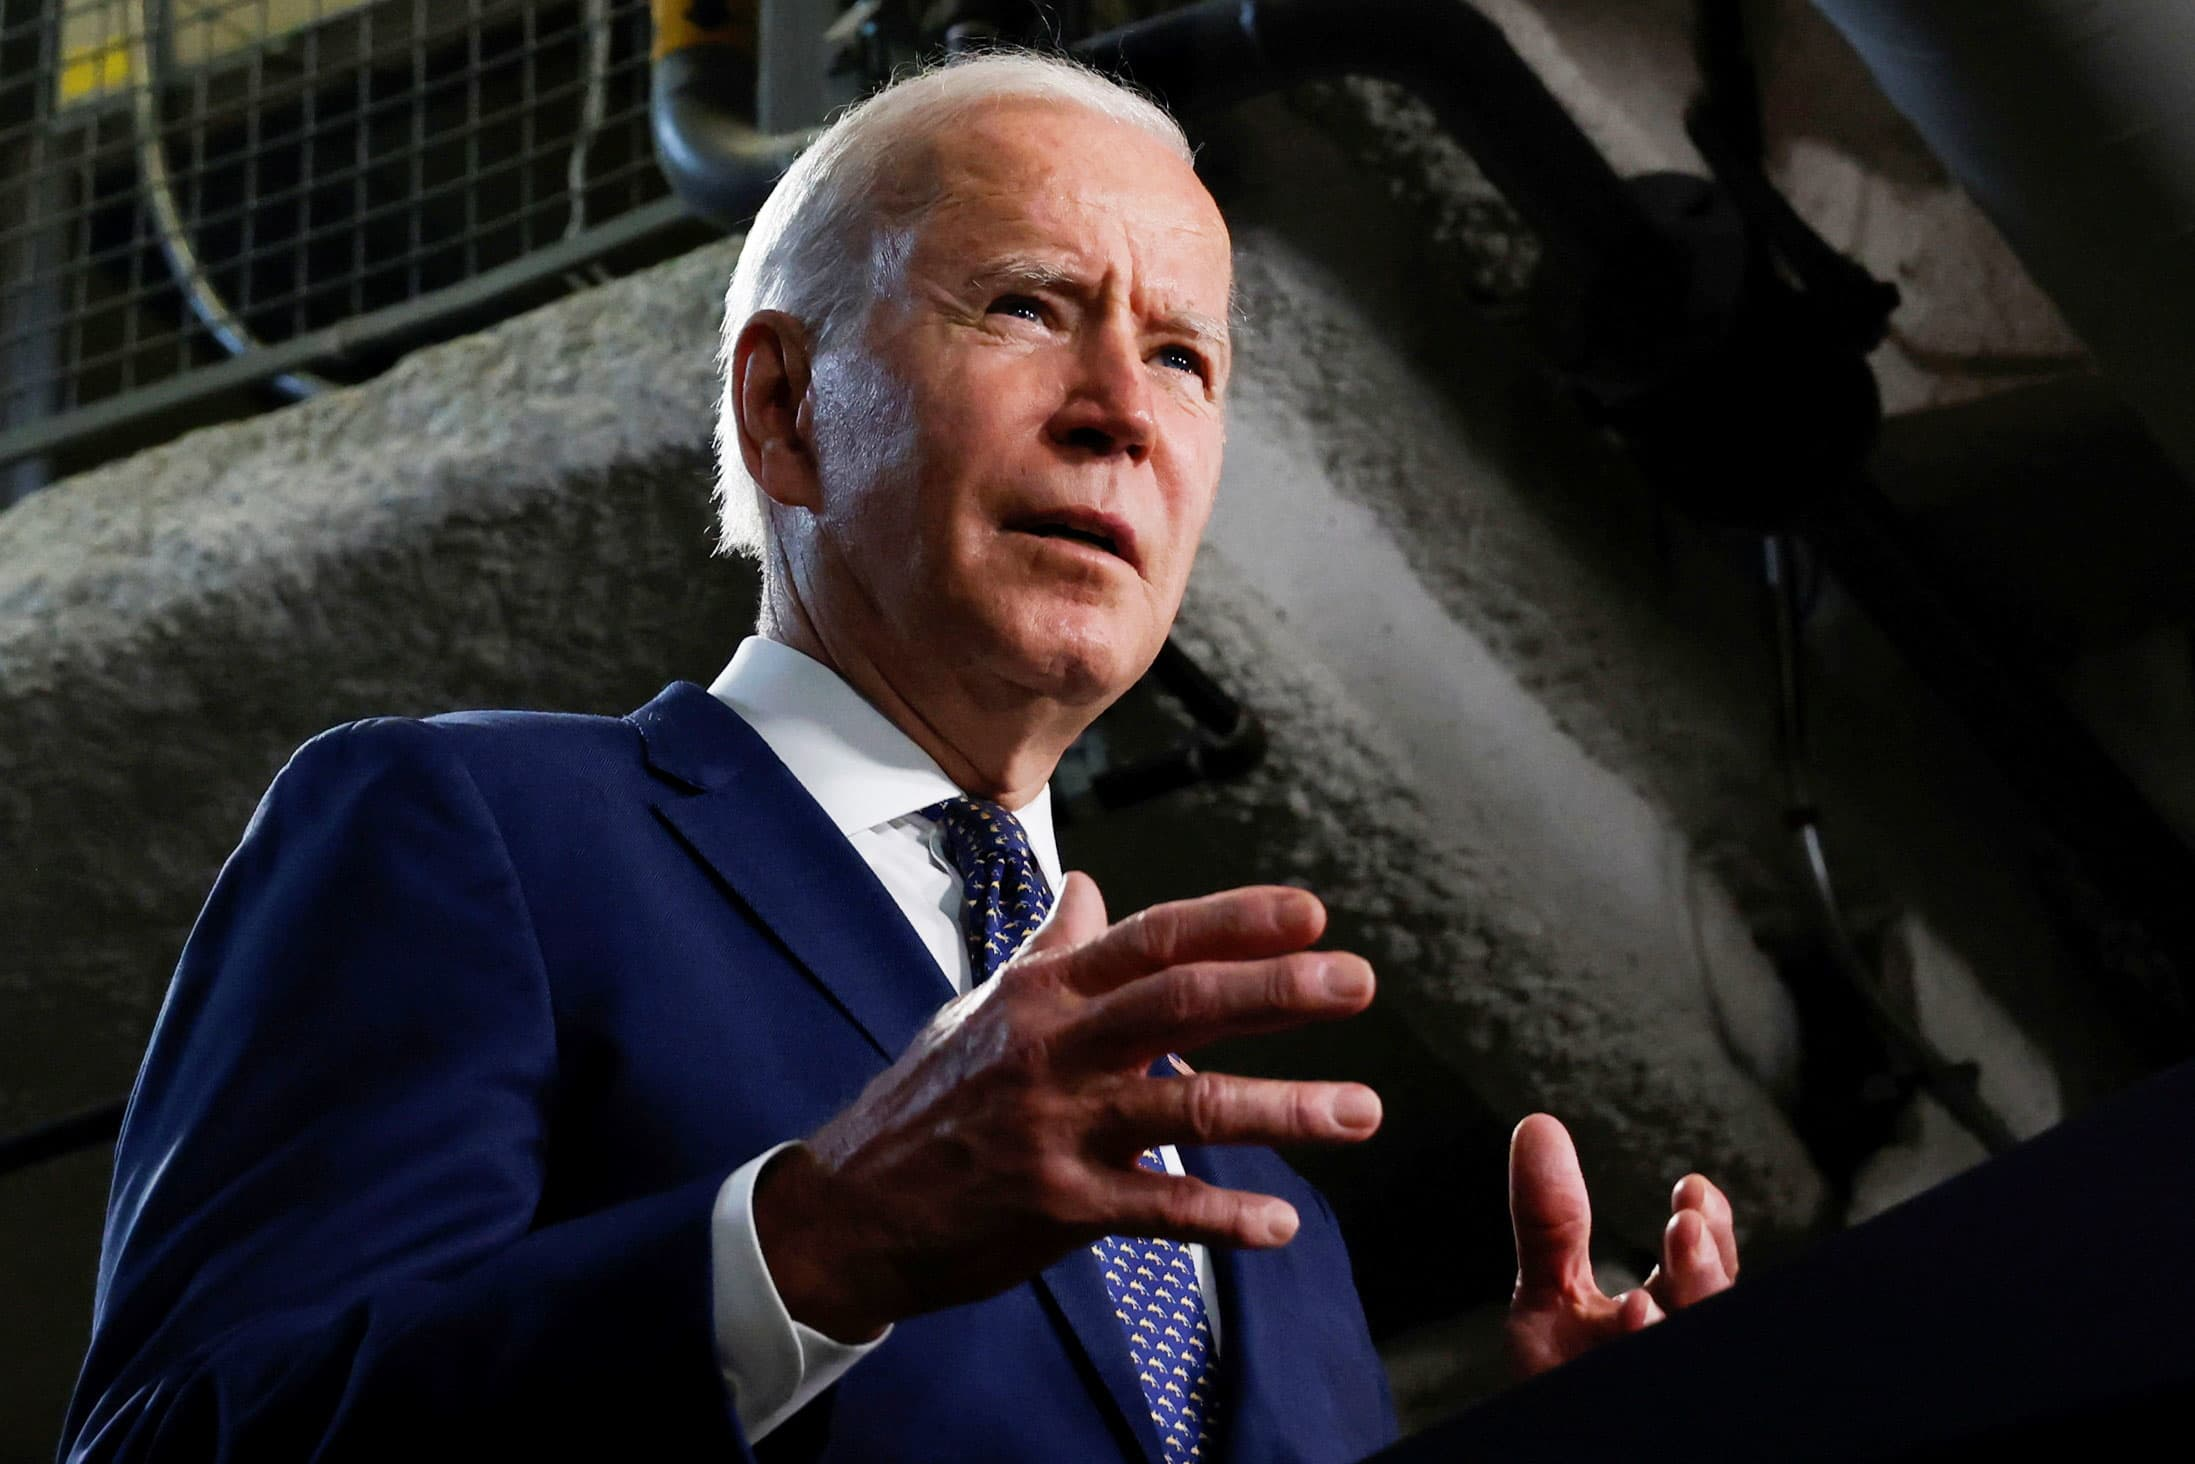 Op-ed: Biden has a historic opportunity in the Middle East to foster peace and economic progress